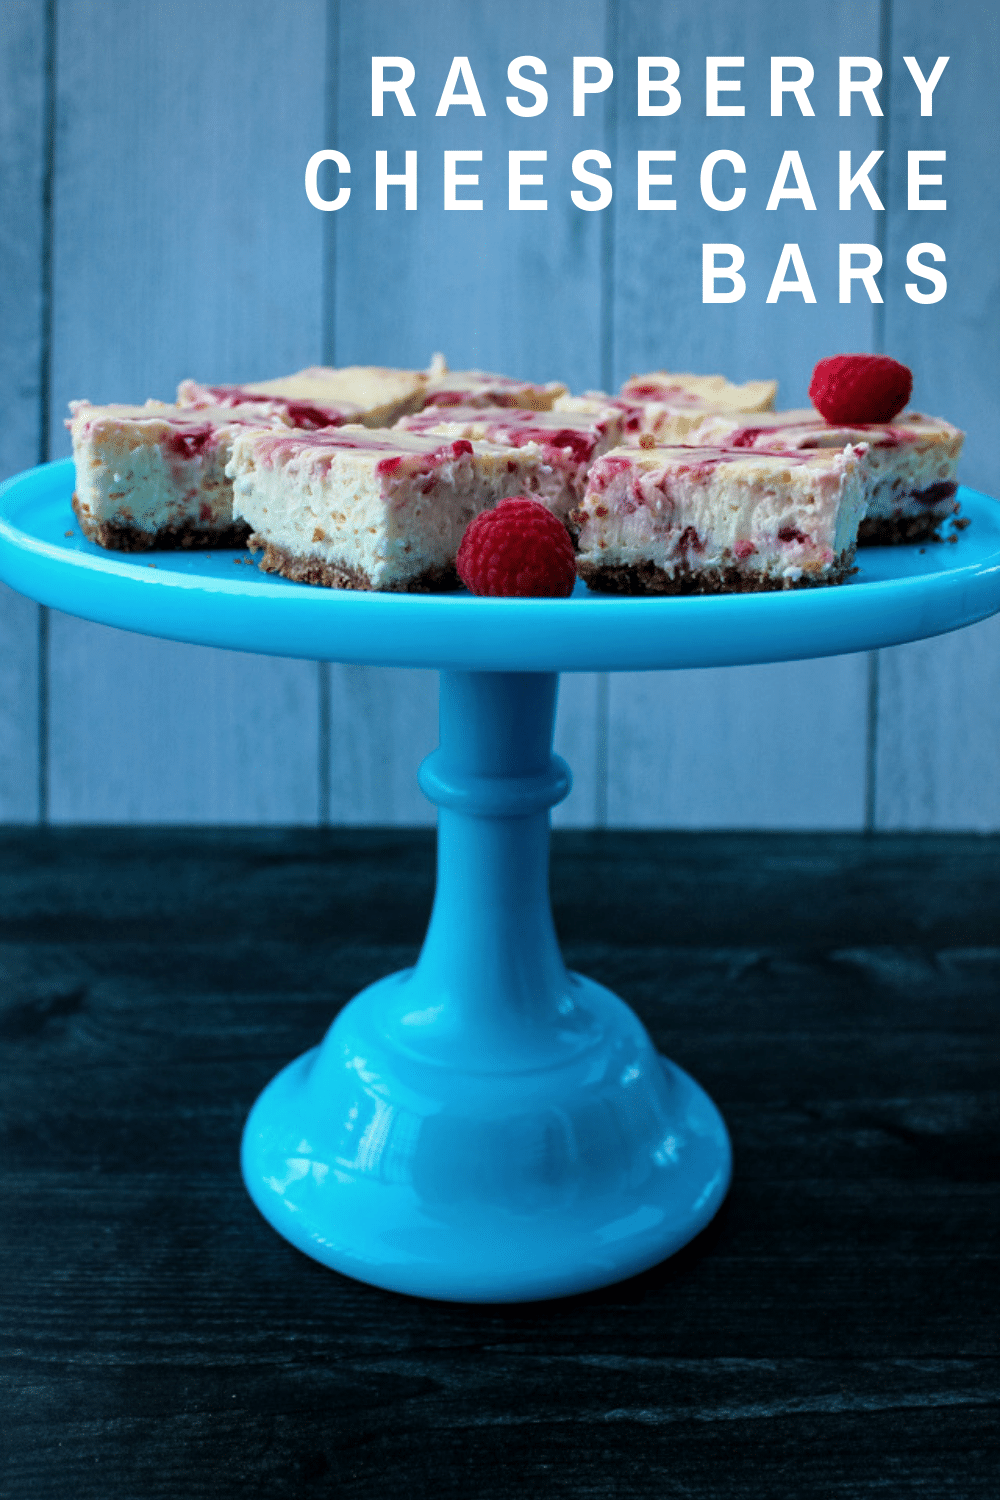 These Raspberry Cheesecake Bars are a favorite dessert in bar form. Creamy cheesecake is swirled with fresh raspberry sauce for a sweet spring or summer cookie perfect for sharing.